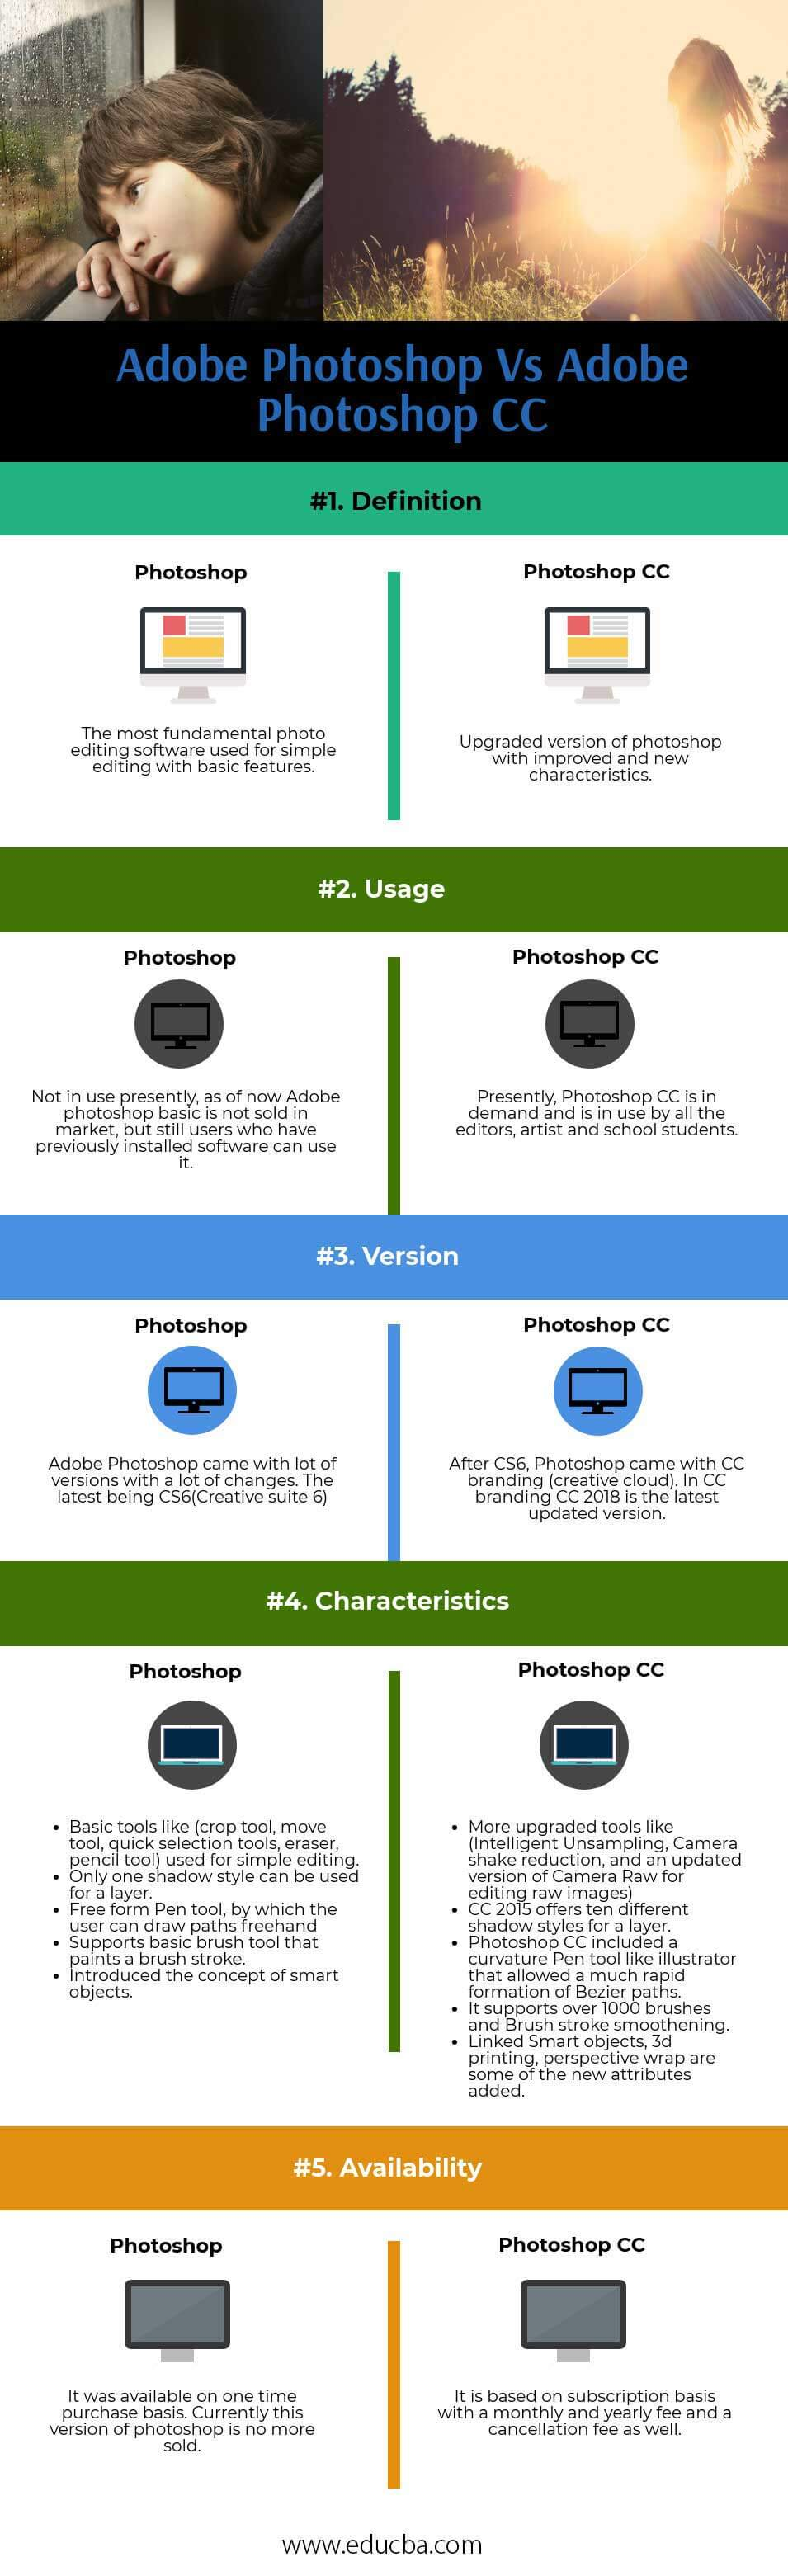 Adobe-Photoshop-Vs-Adobe-Photoshop-CC